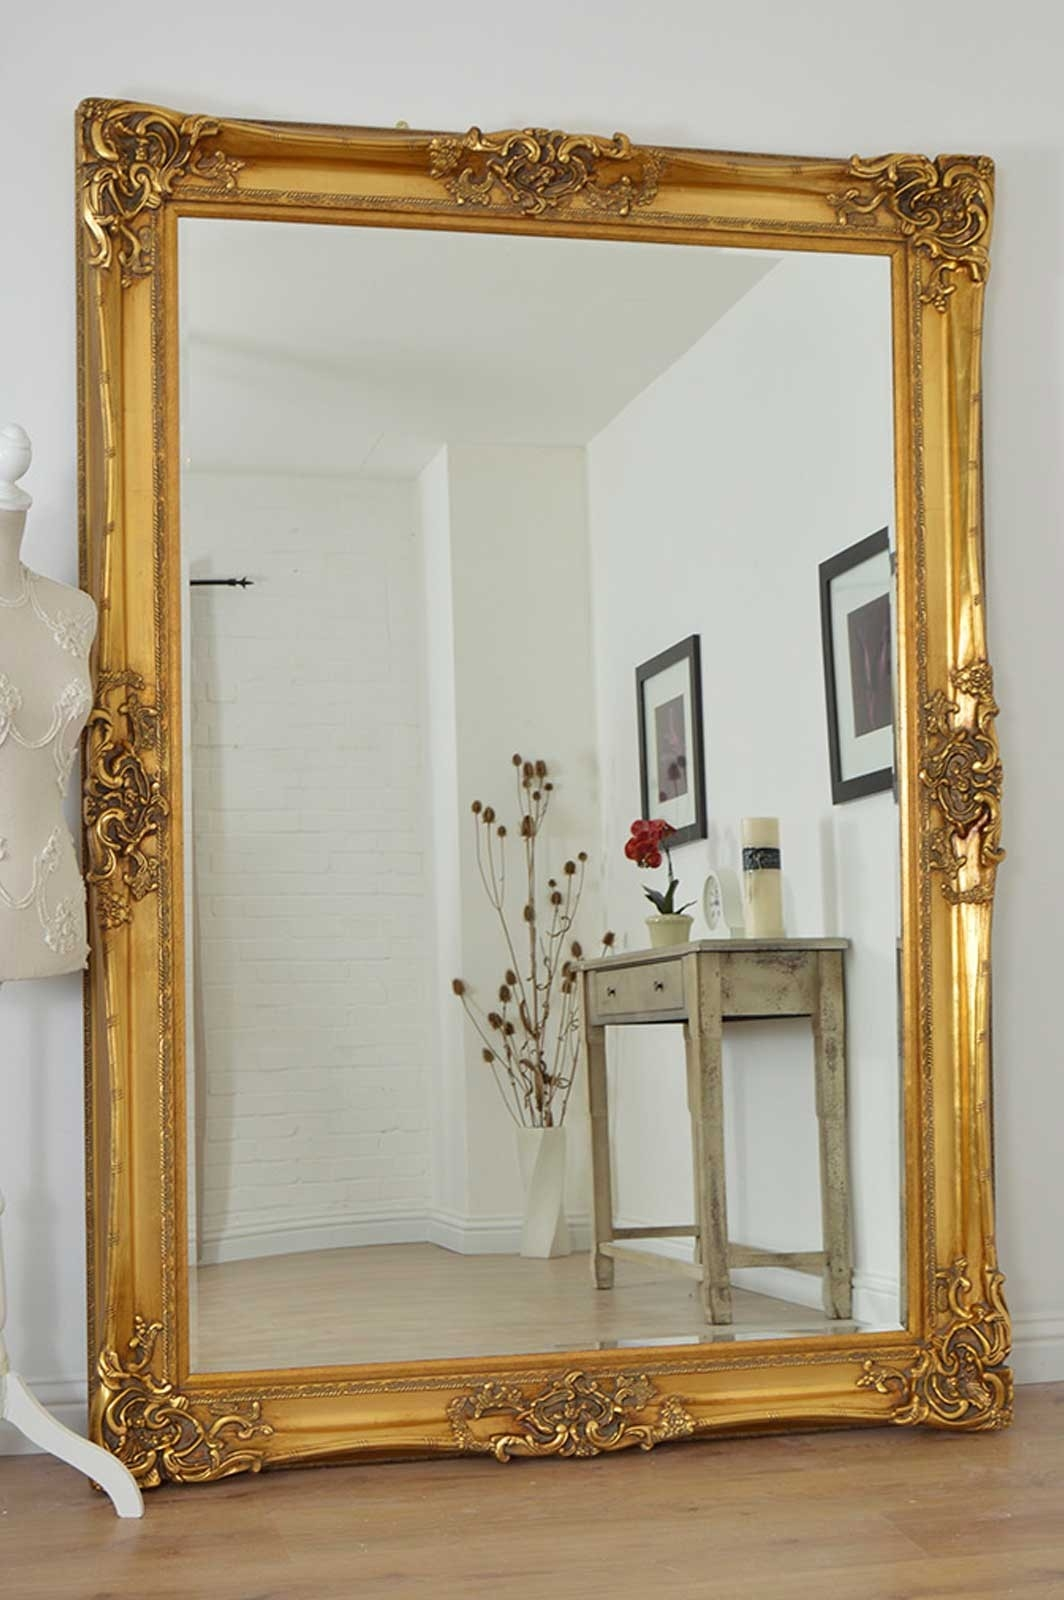 Large Gold Very Ornate Antique Design Wall Mirror 7ft X 5ft 213cm Throughout Antique Large Mirror (Image 14 of 15)